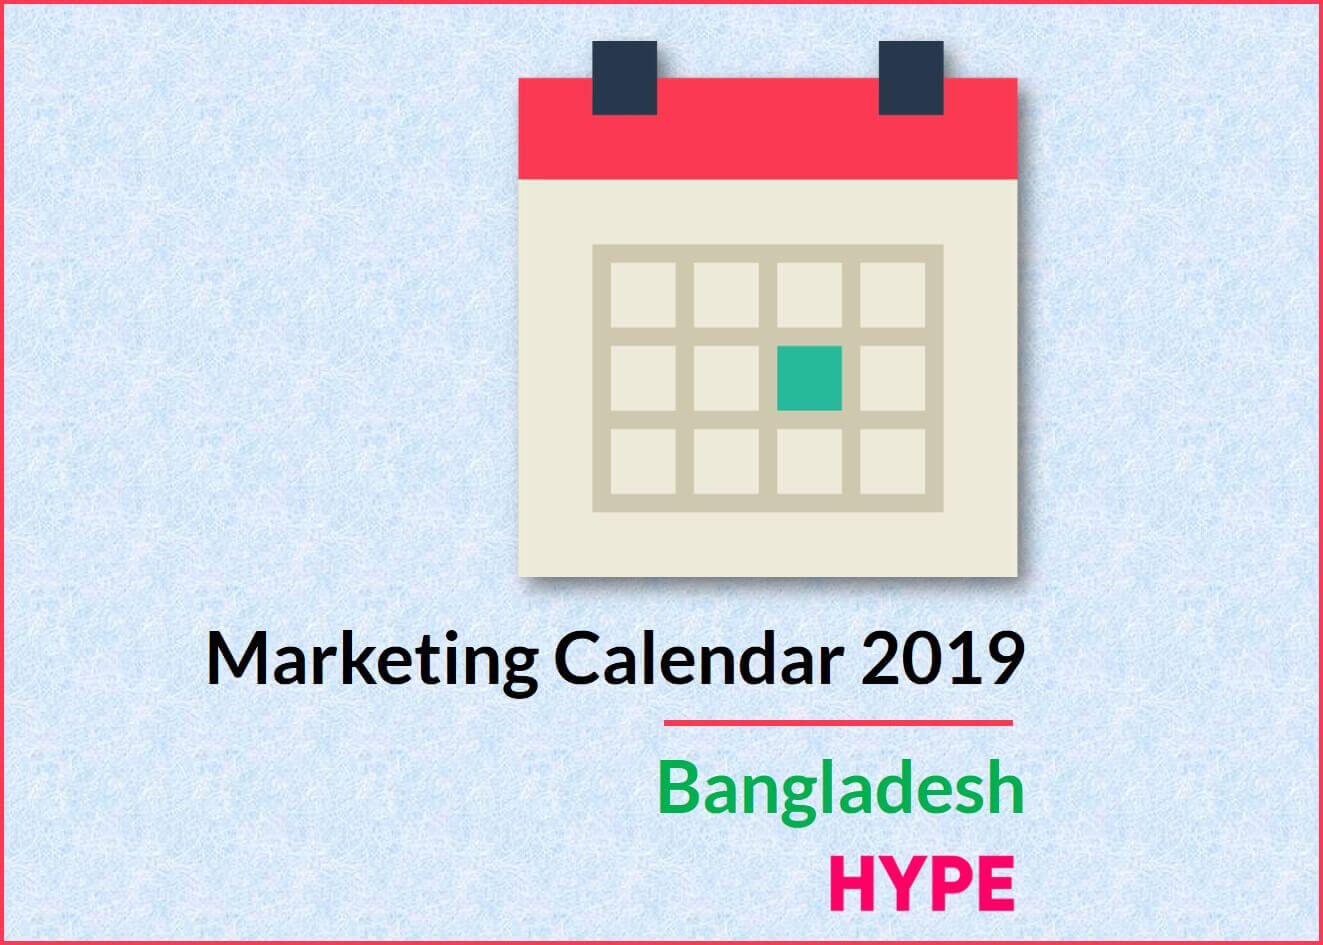 Marketing Calendar 2019 Bangladesh